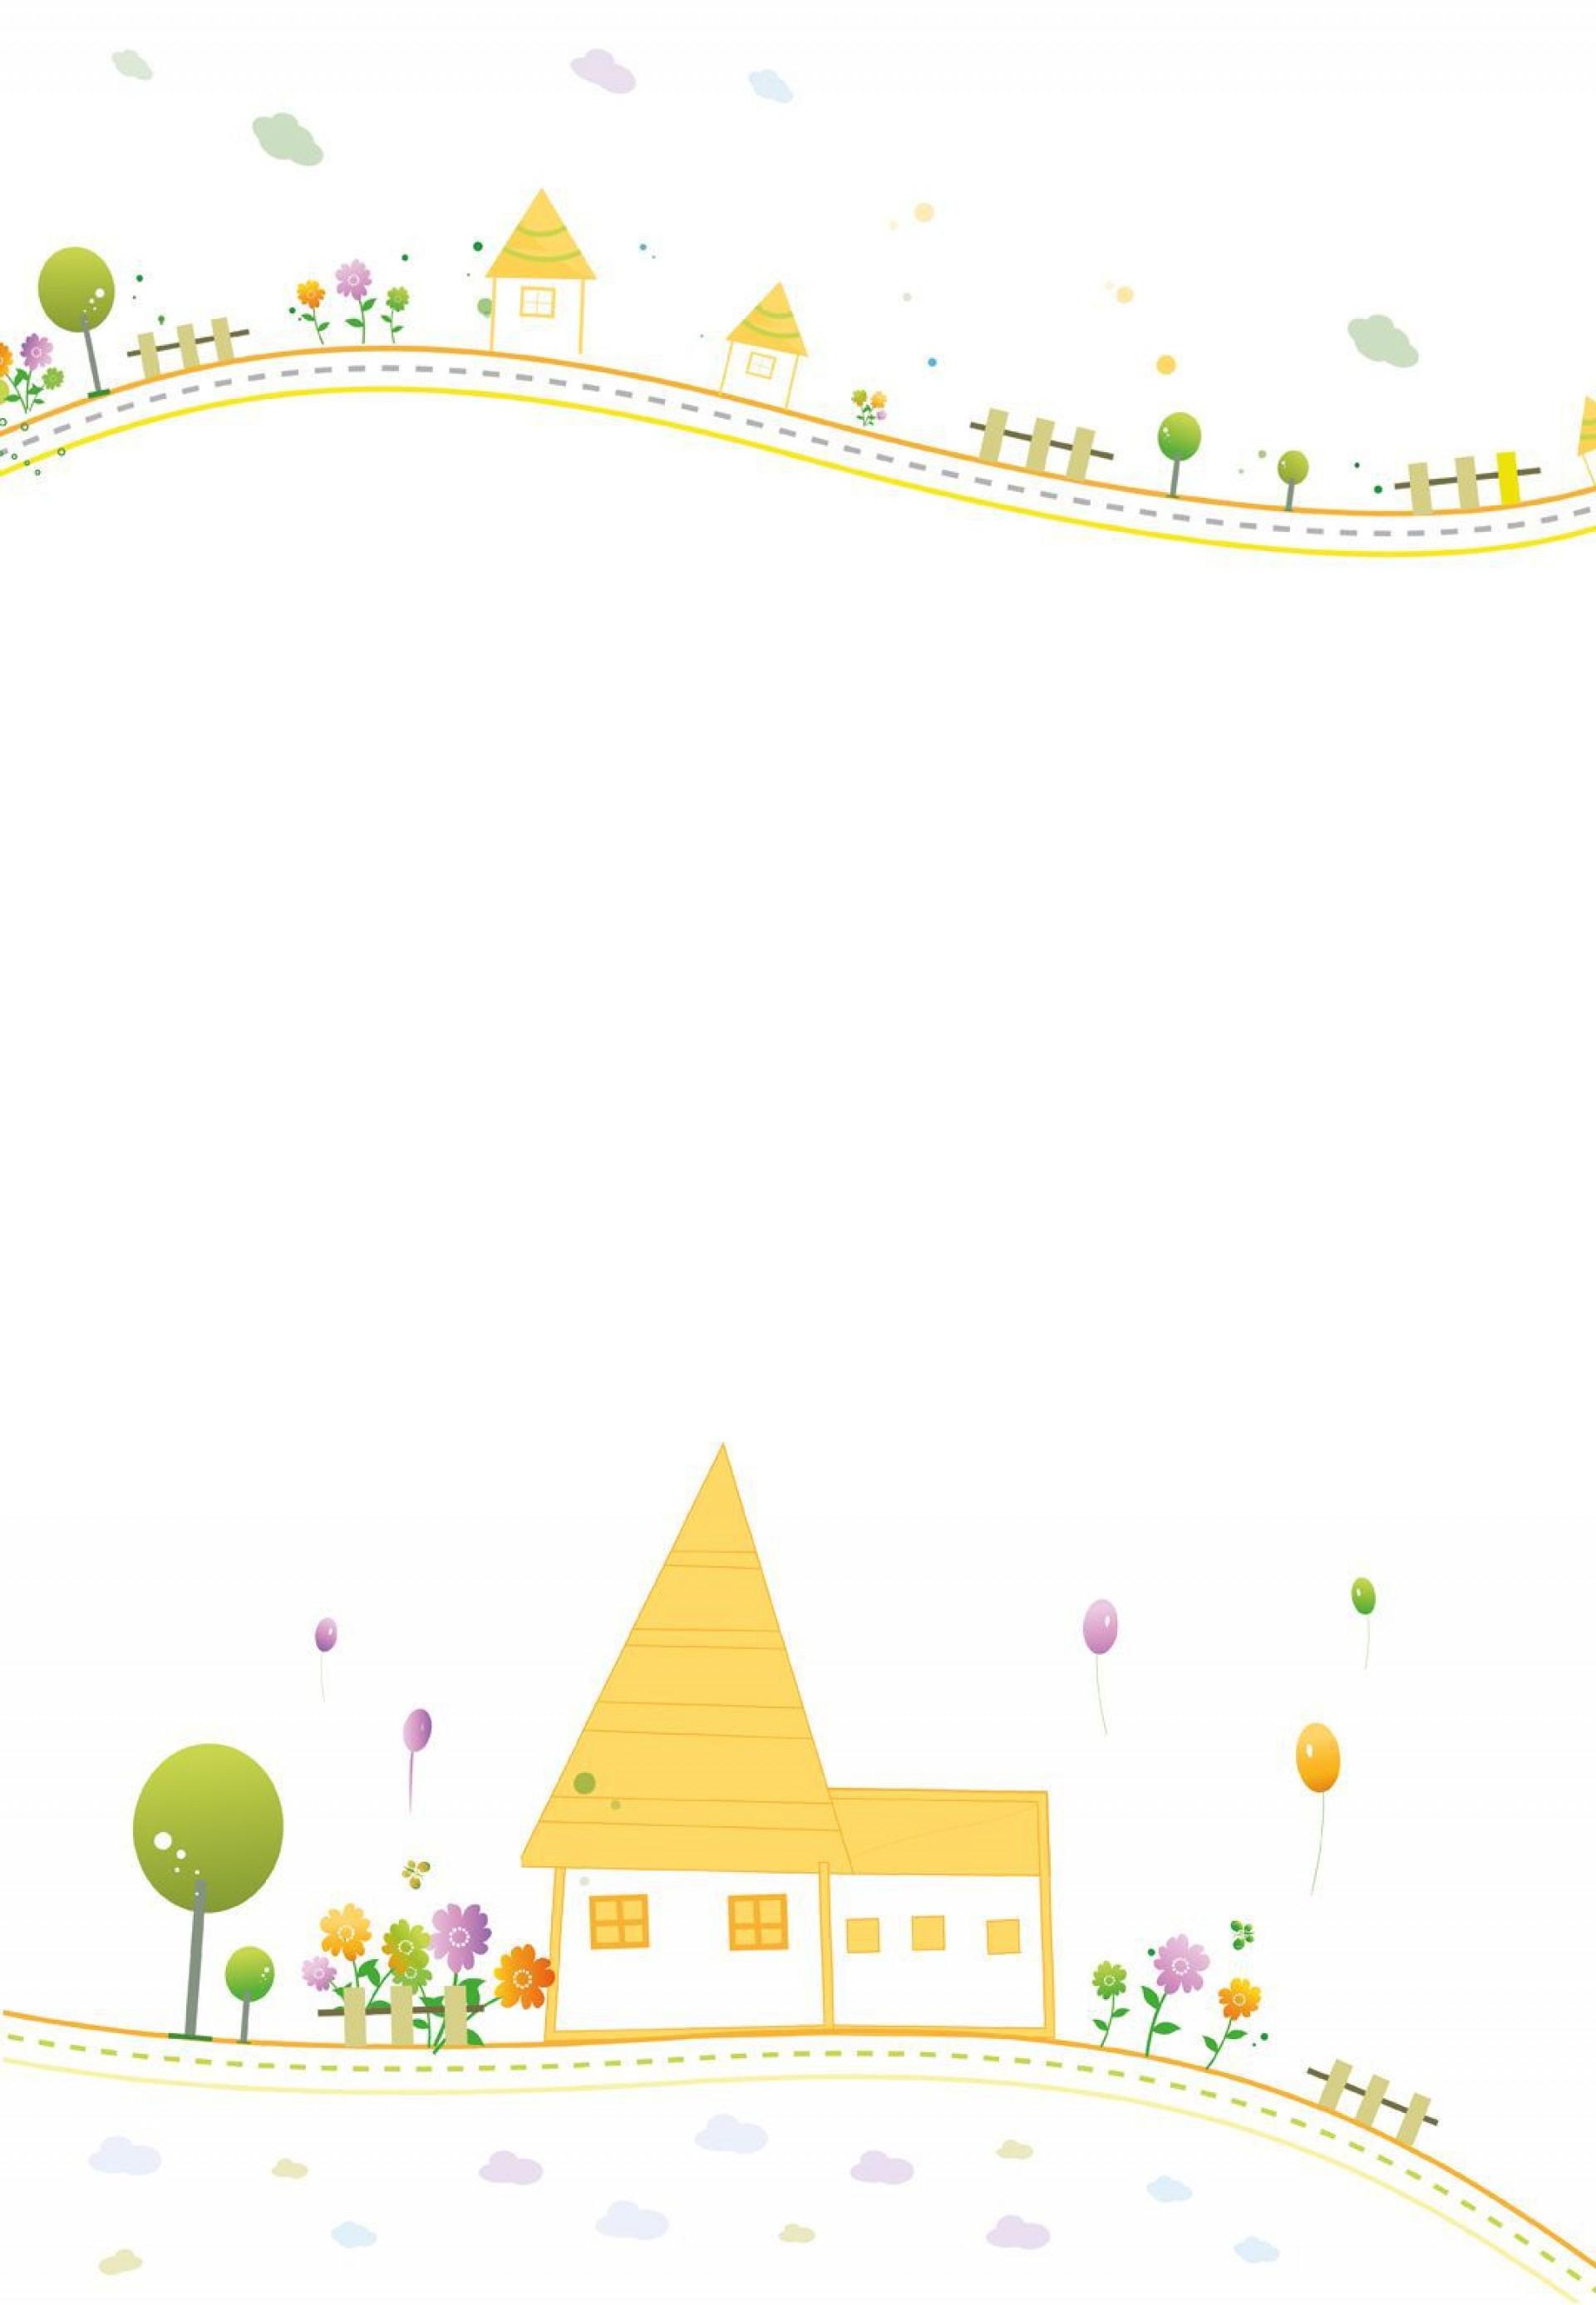 000 Unforgettable Housewarming Party Invitation Template Highest Clarity  Templates Free Download Card1920